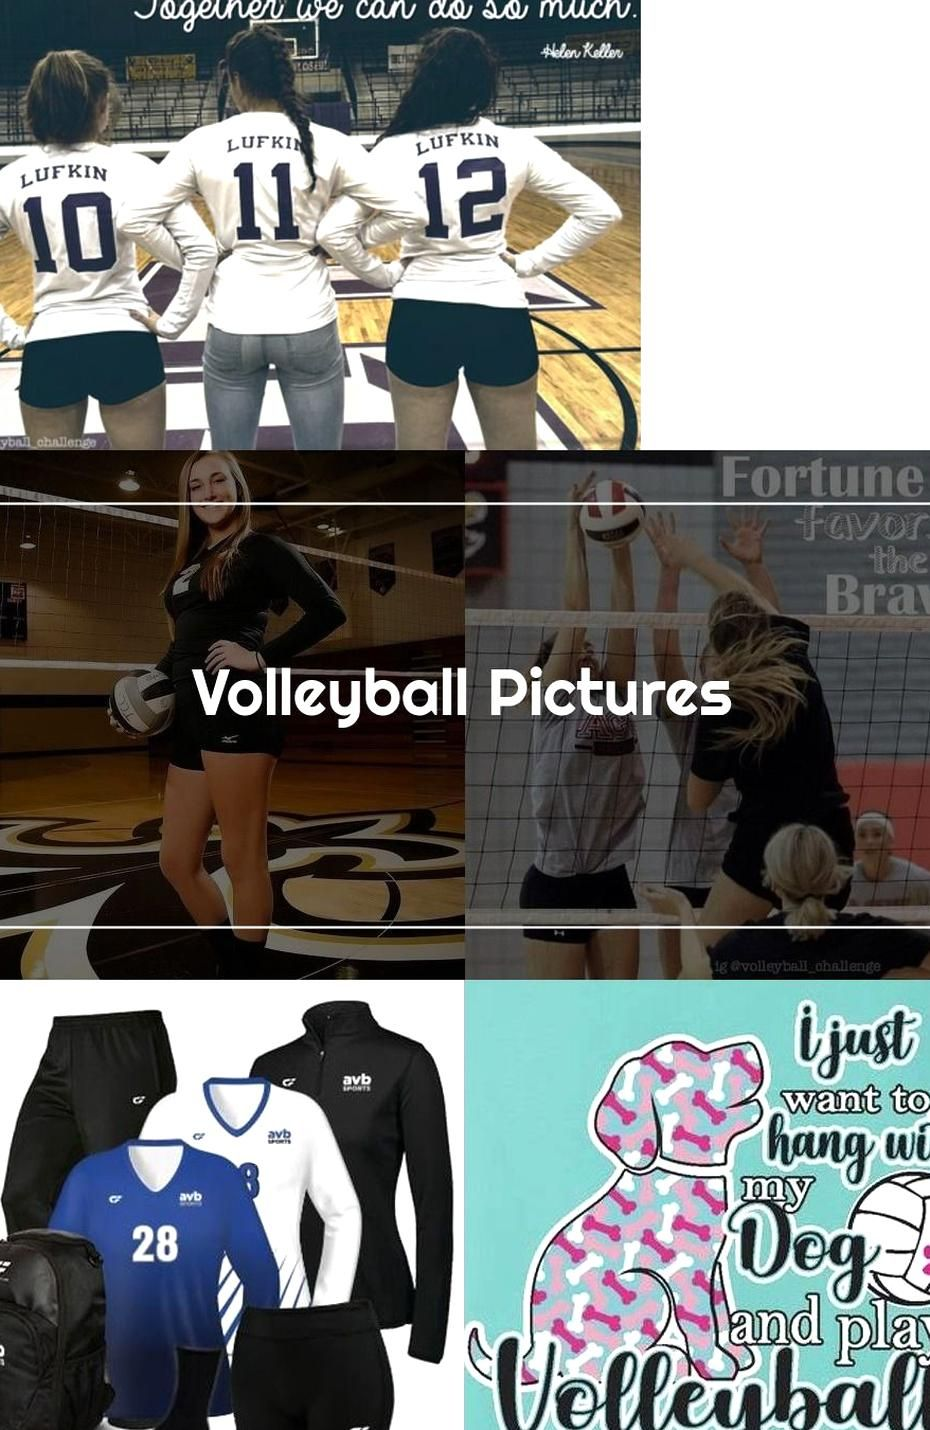 Volleyball Pictures The Athlete Company In 2020 Volleyball Pictures Pictures Volleyball